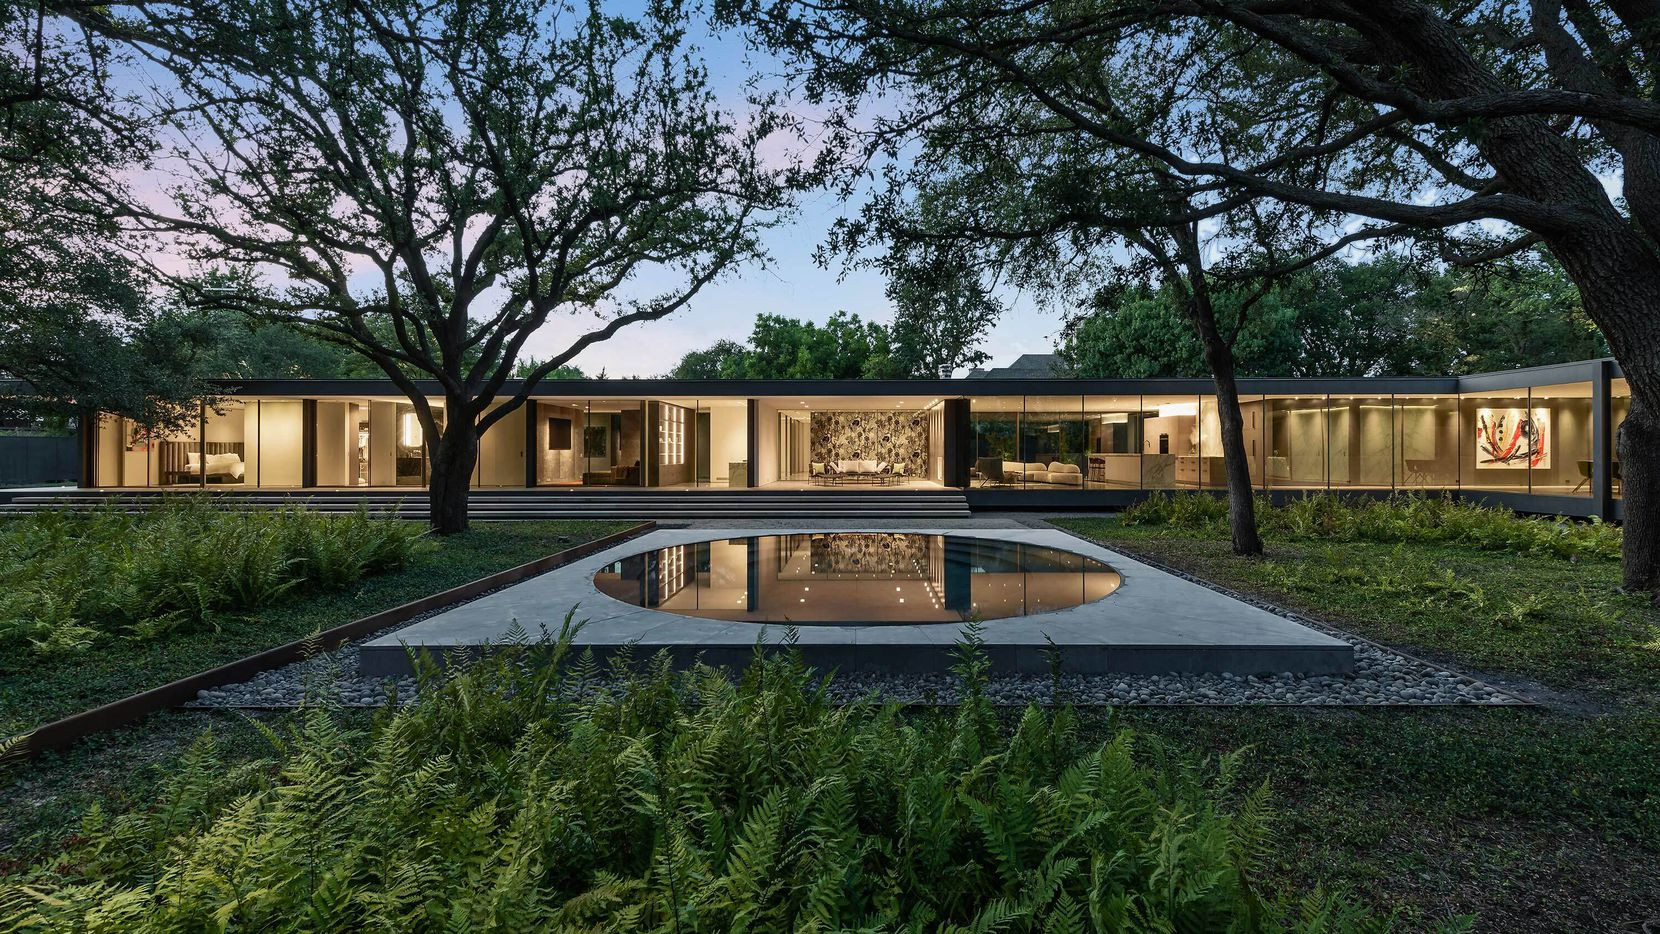 Take a look at the home at 11345 W. Ricks Circle in Dallas. The home was designed with sustainability in mind.